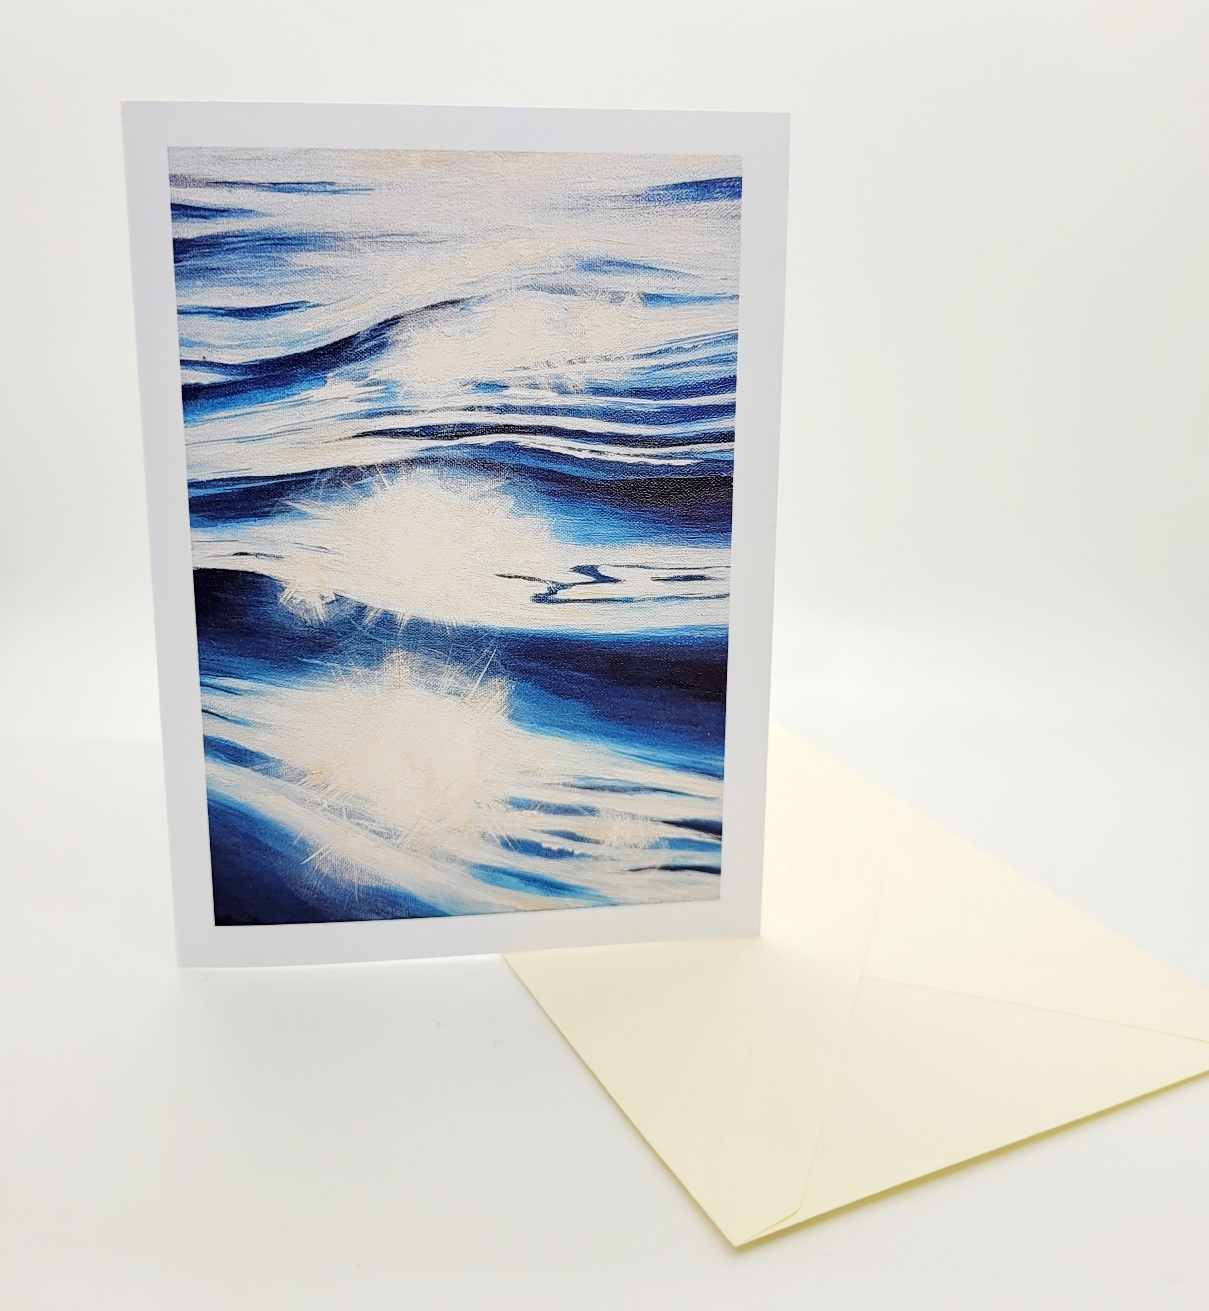 Greetings card. Surface sparkle